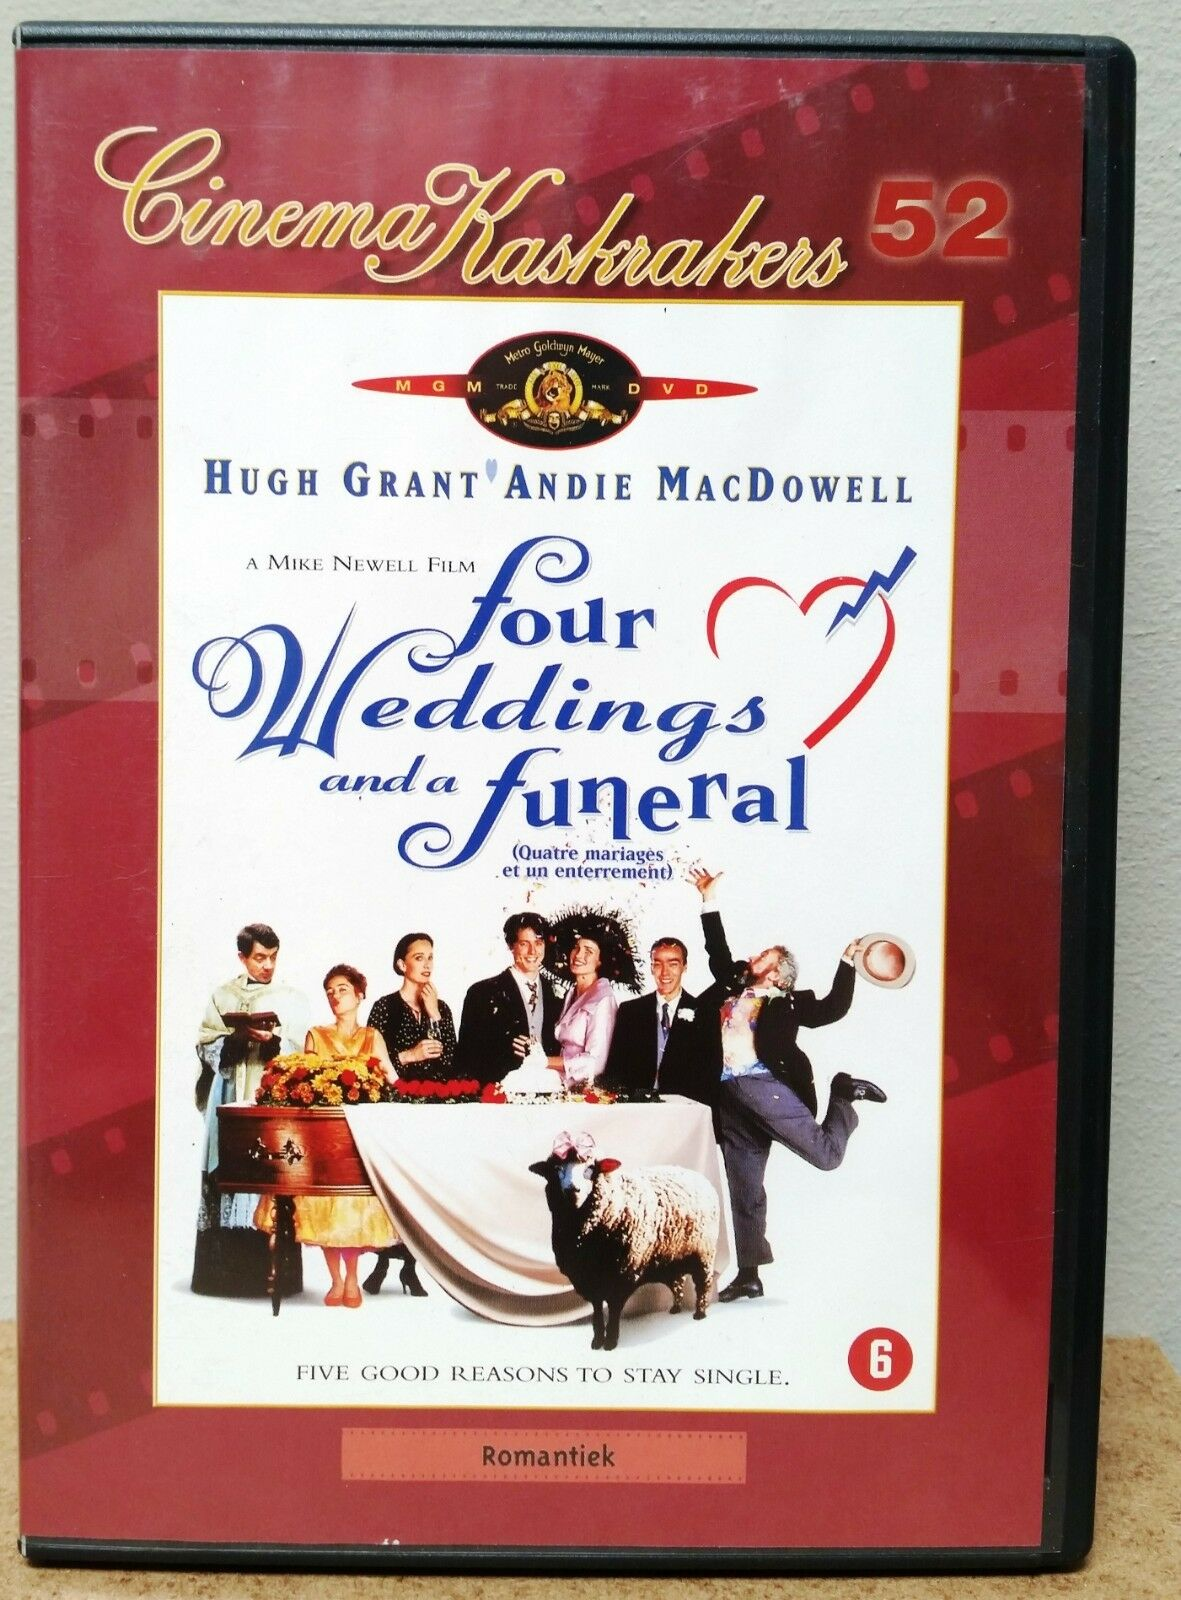 Four Weddings And A Funeral (1994) Hugh Grant – Andie MacDowell